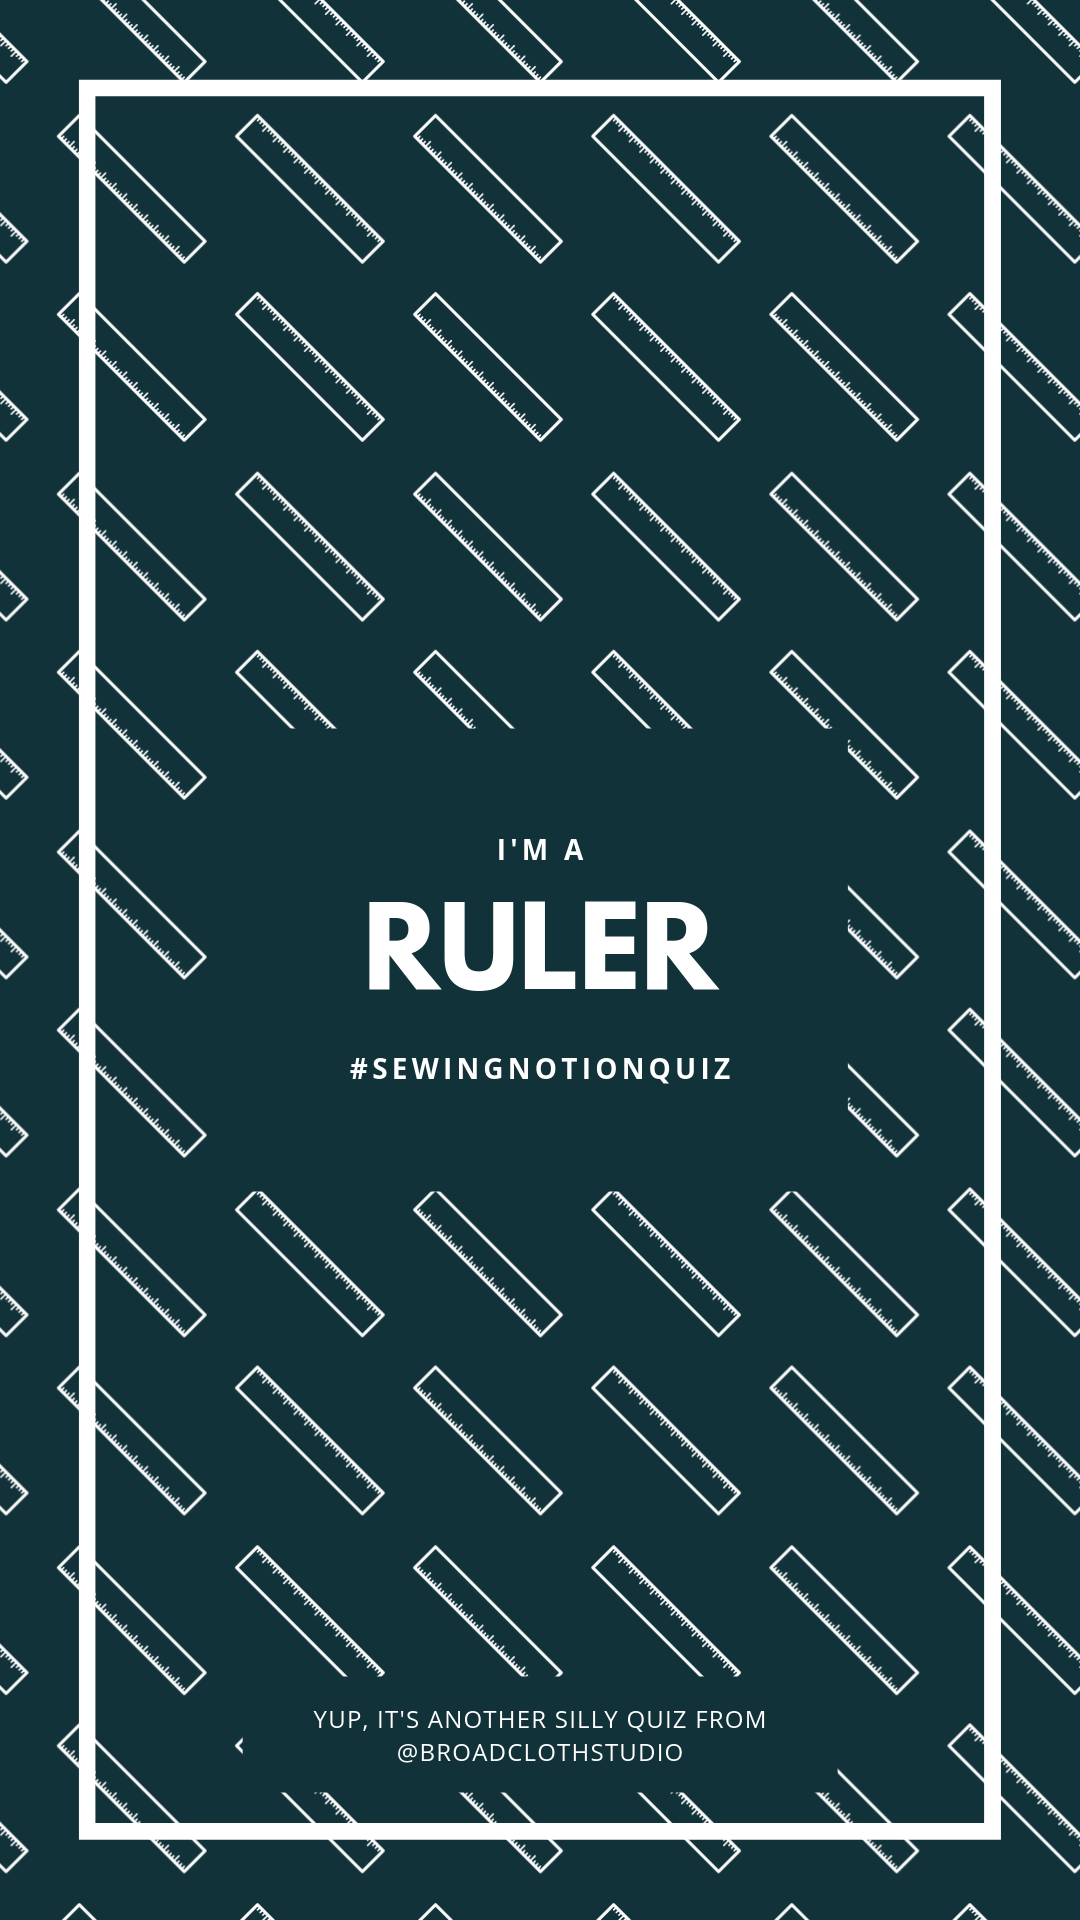 broadcloth studio sewing notions quiz ig story ruler